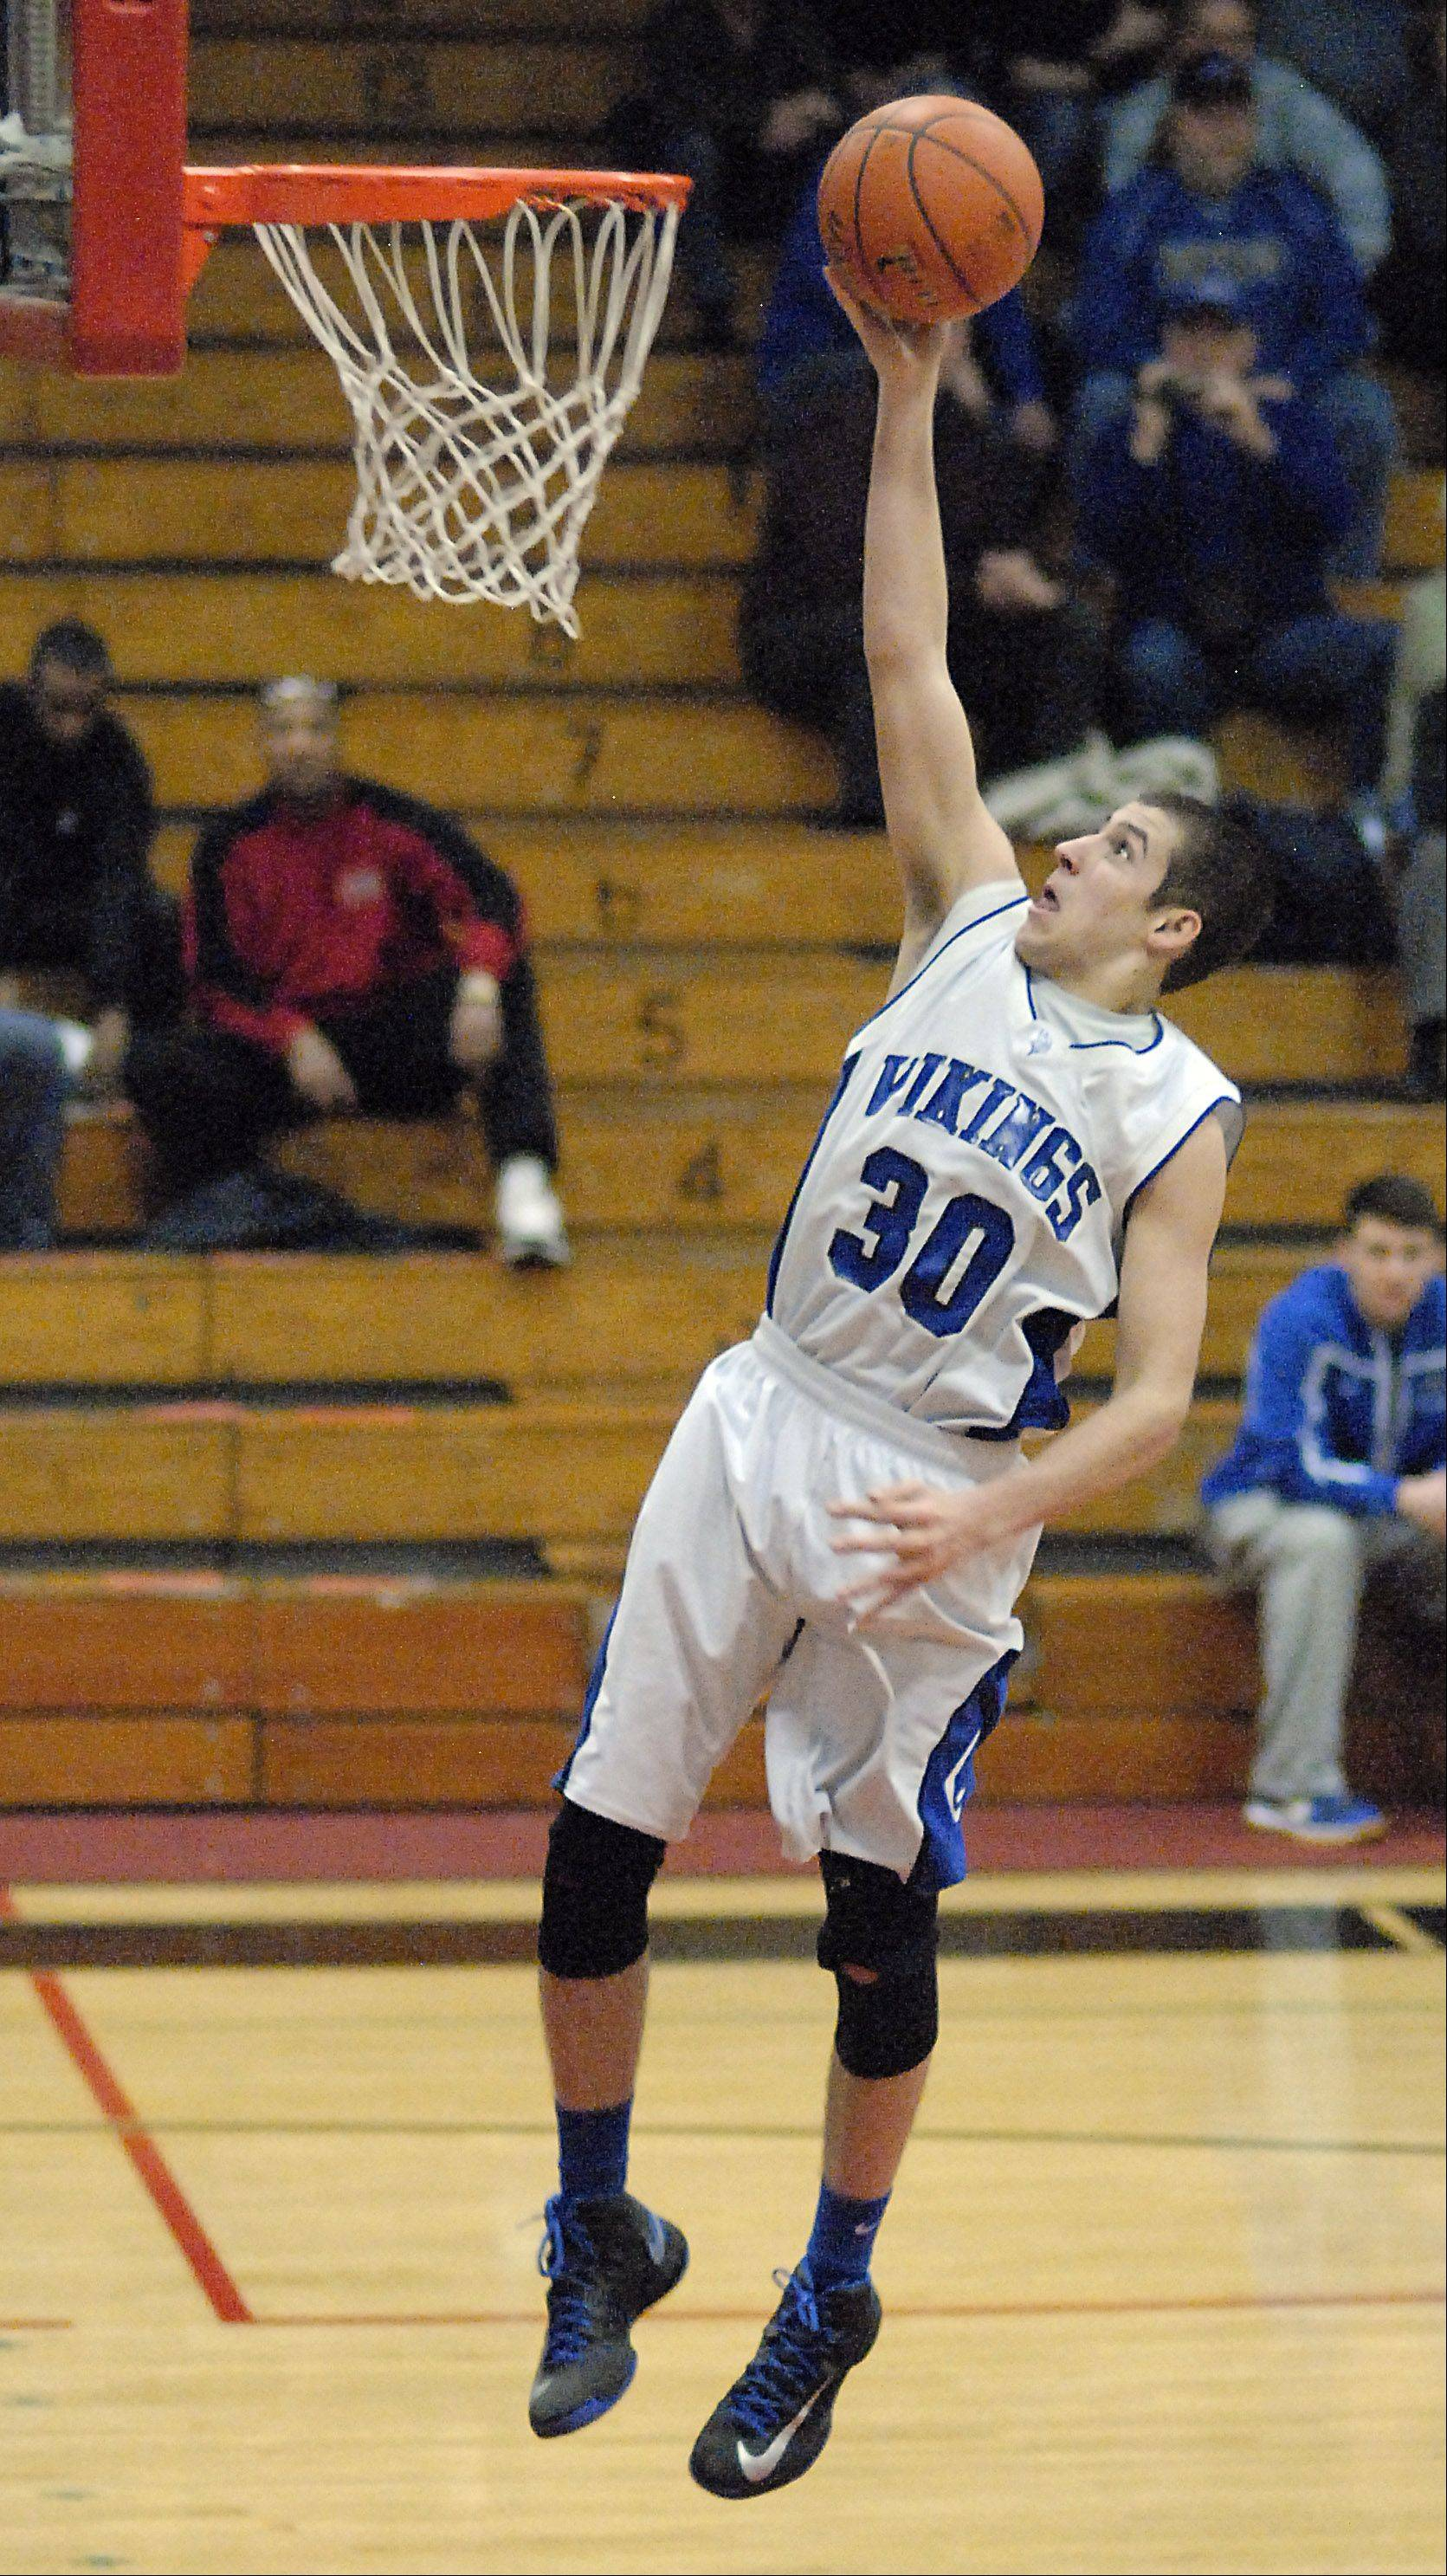 Geneva's Chris Parrilli sinks a shot with no one blocking his way in the fourth quarter on Friday, December 29.